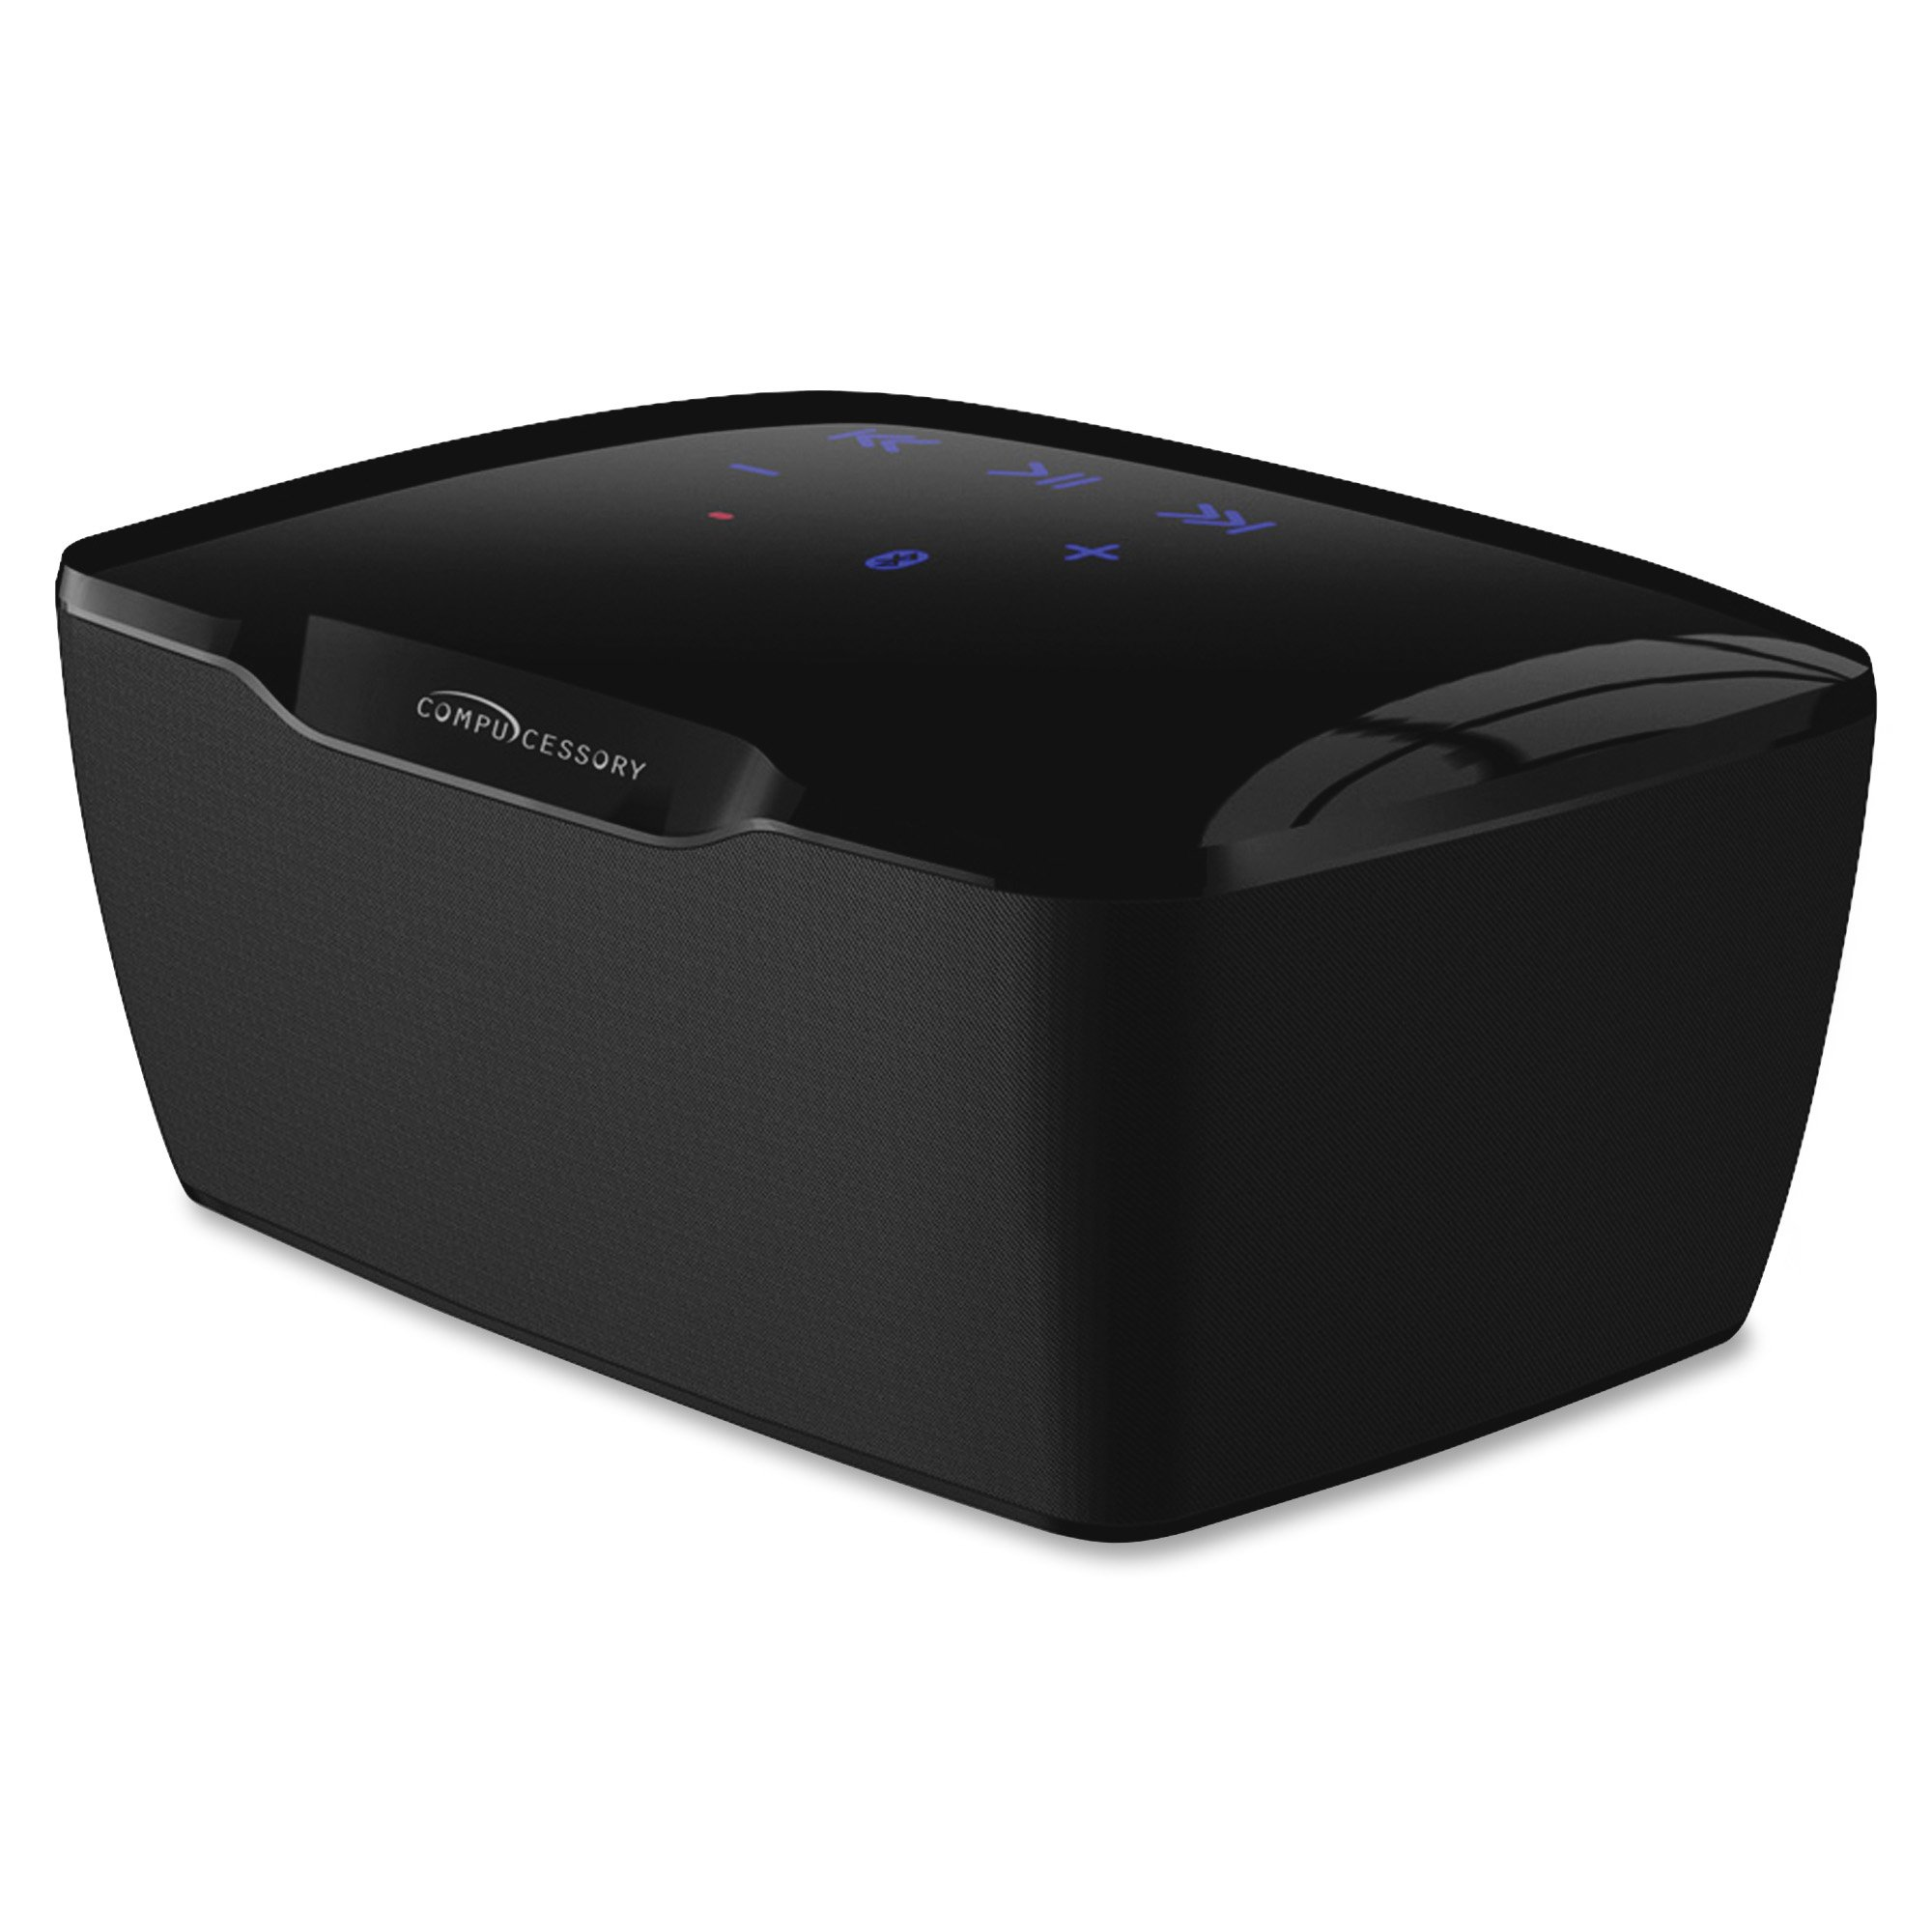 Compucessory 2.0 Wireless Speaker System - 2 W RMS (CCS50923) by Compucessory